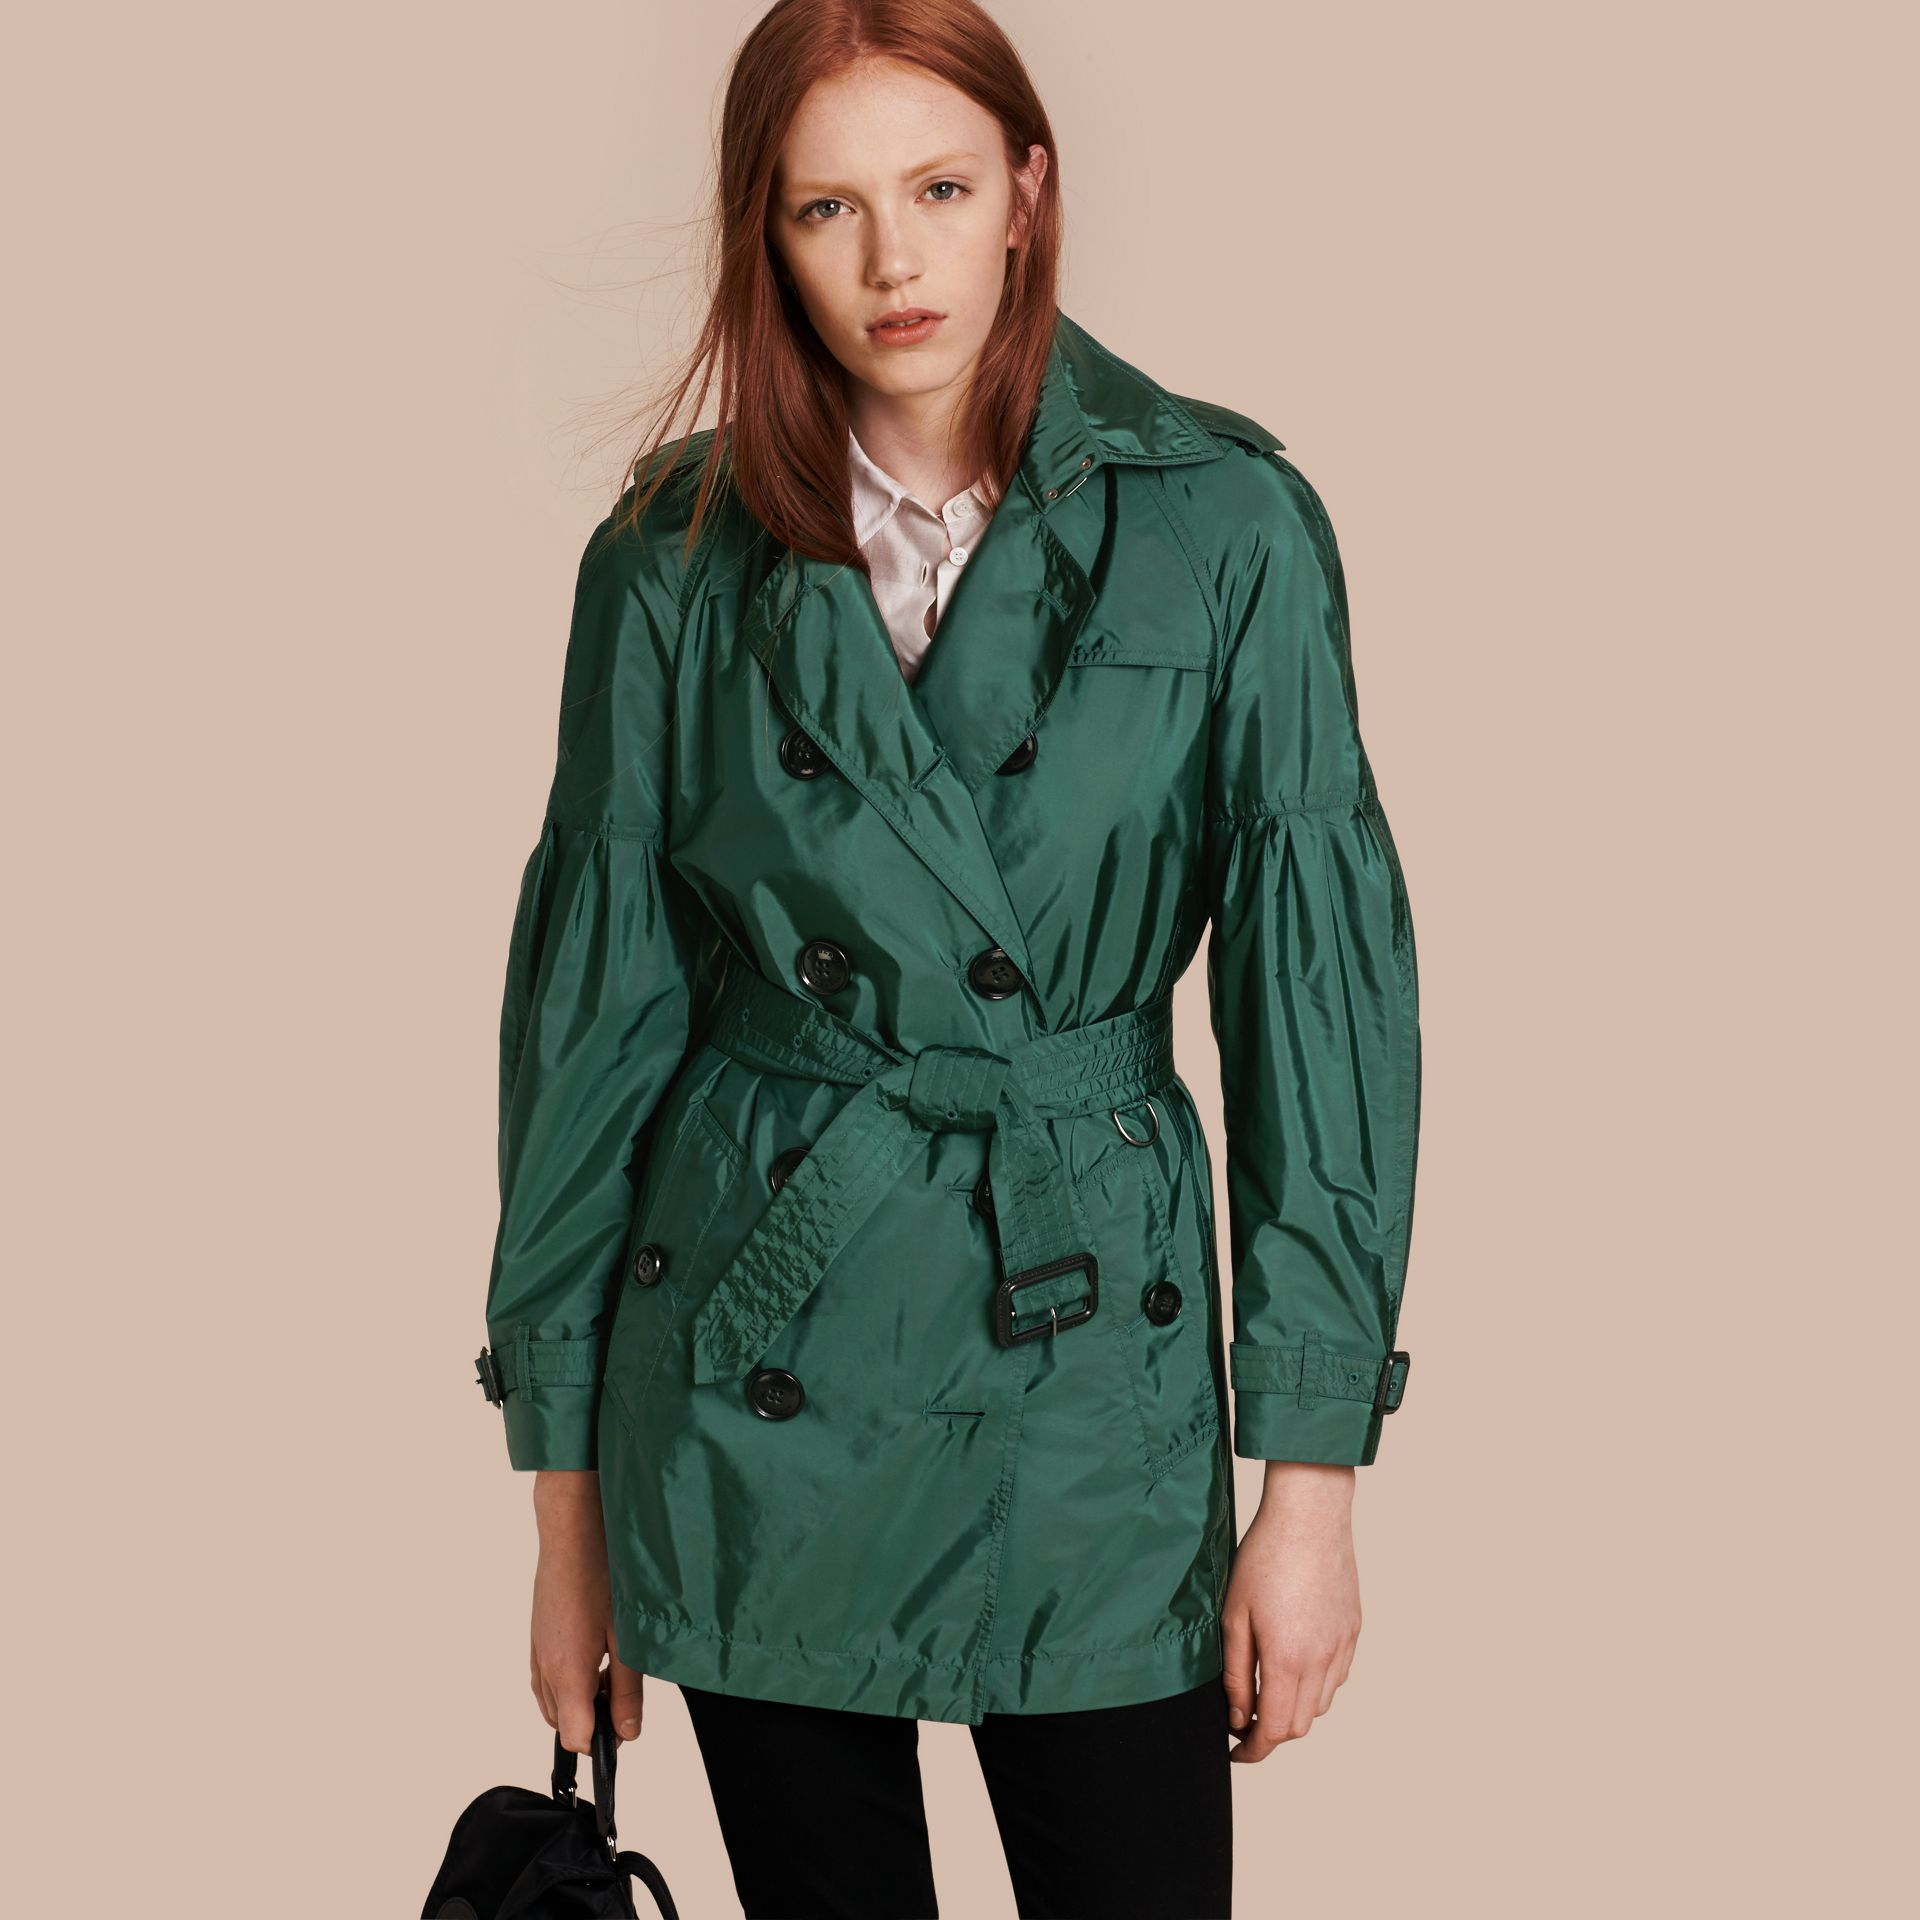 Vert bouteille intense Trench-coat repliable avec manches cloches Vert Bouteille Intense - photo de la galerie 1